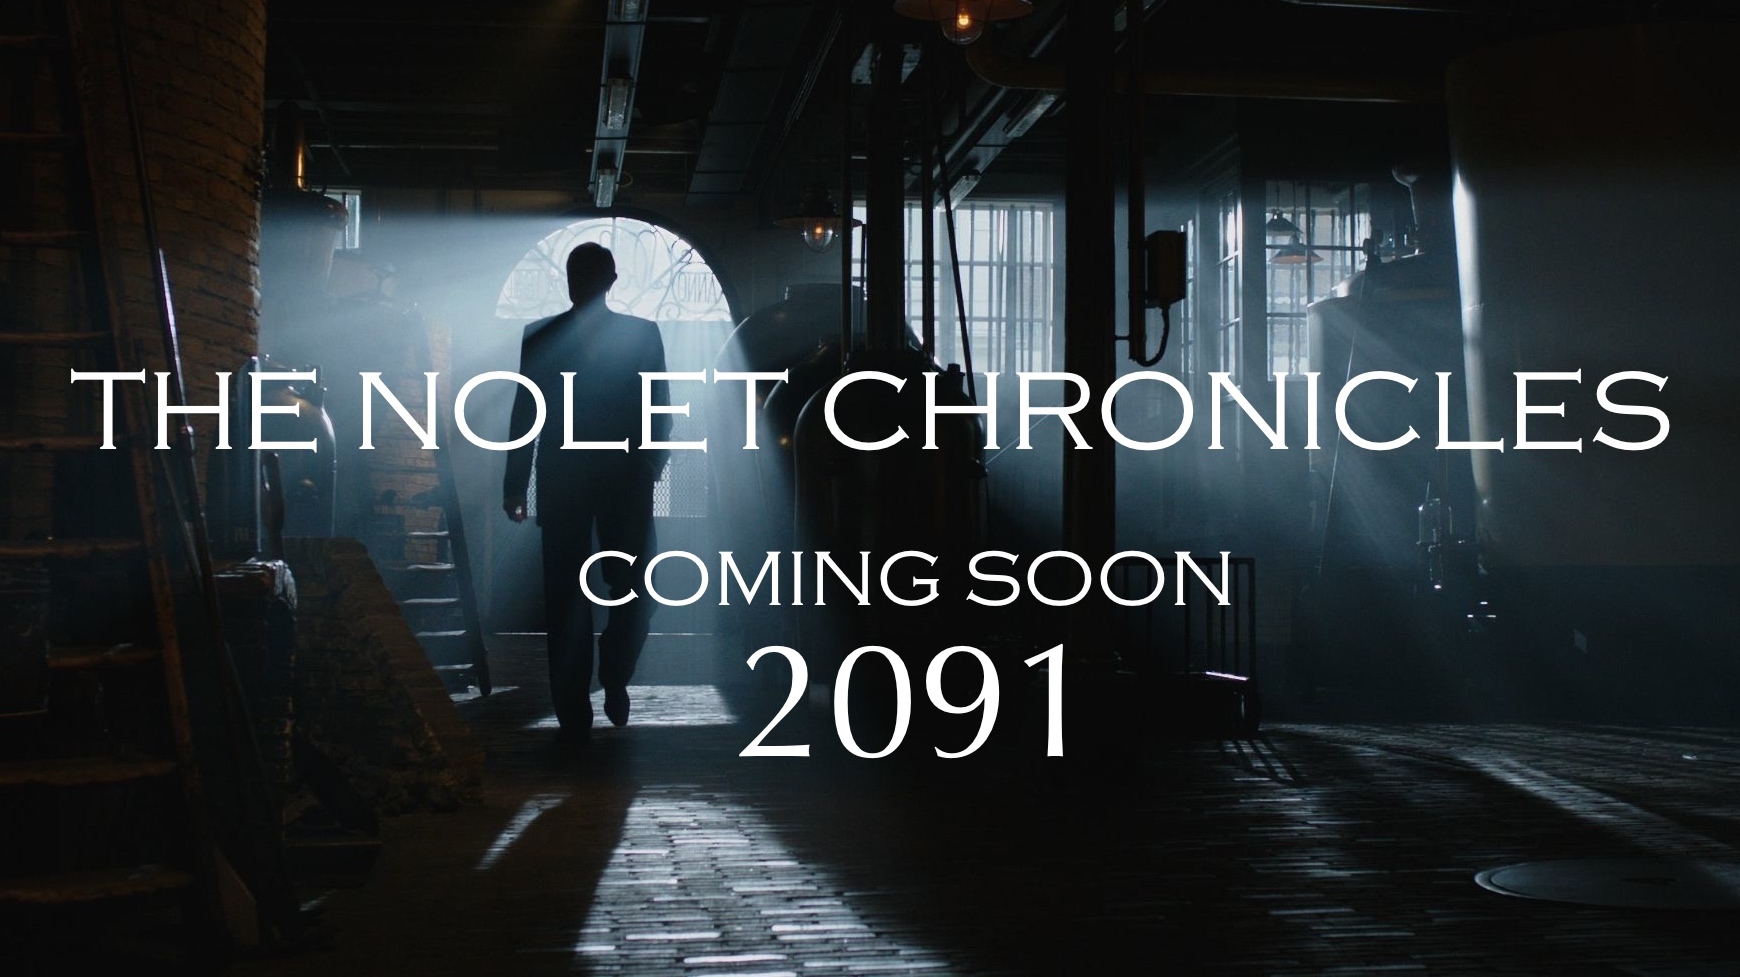 The Nolet Chronicles 2091